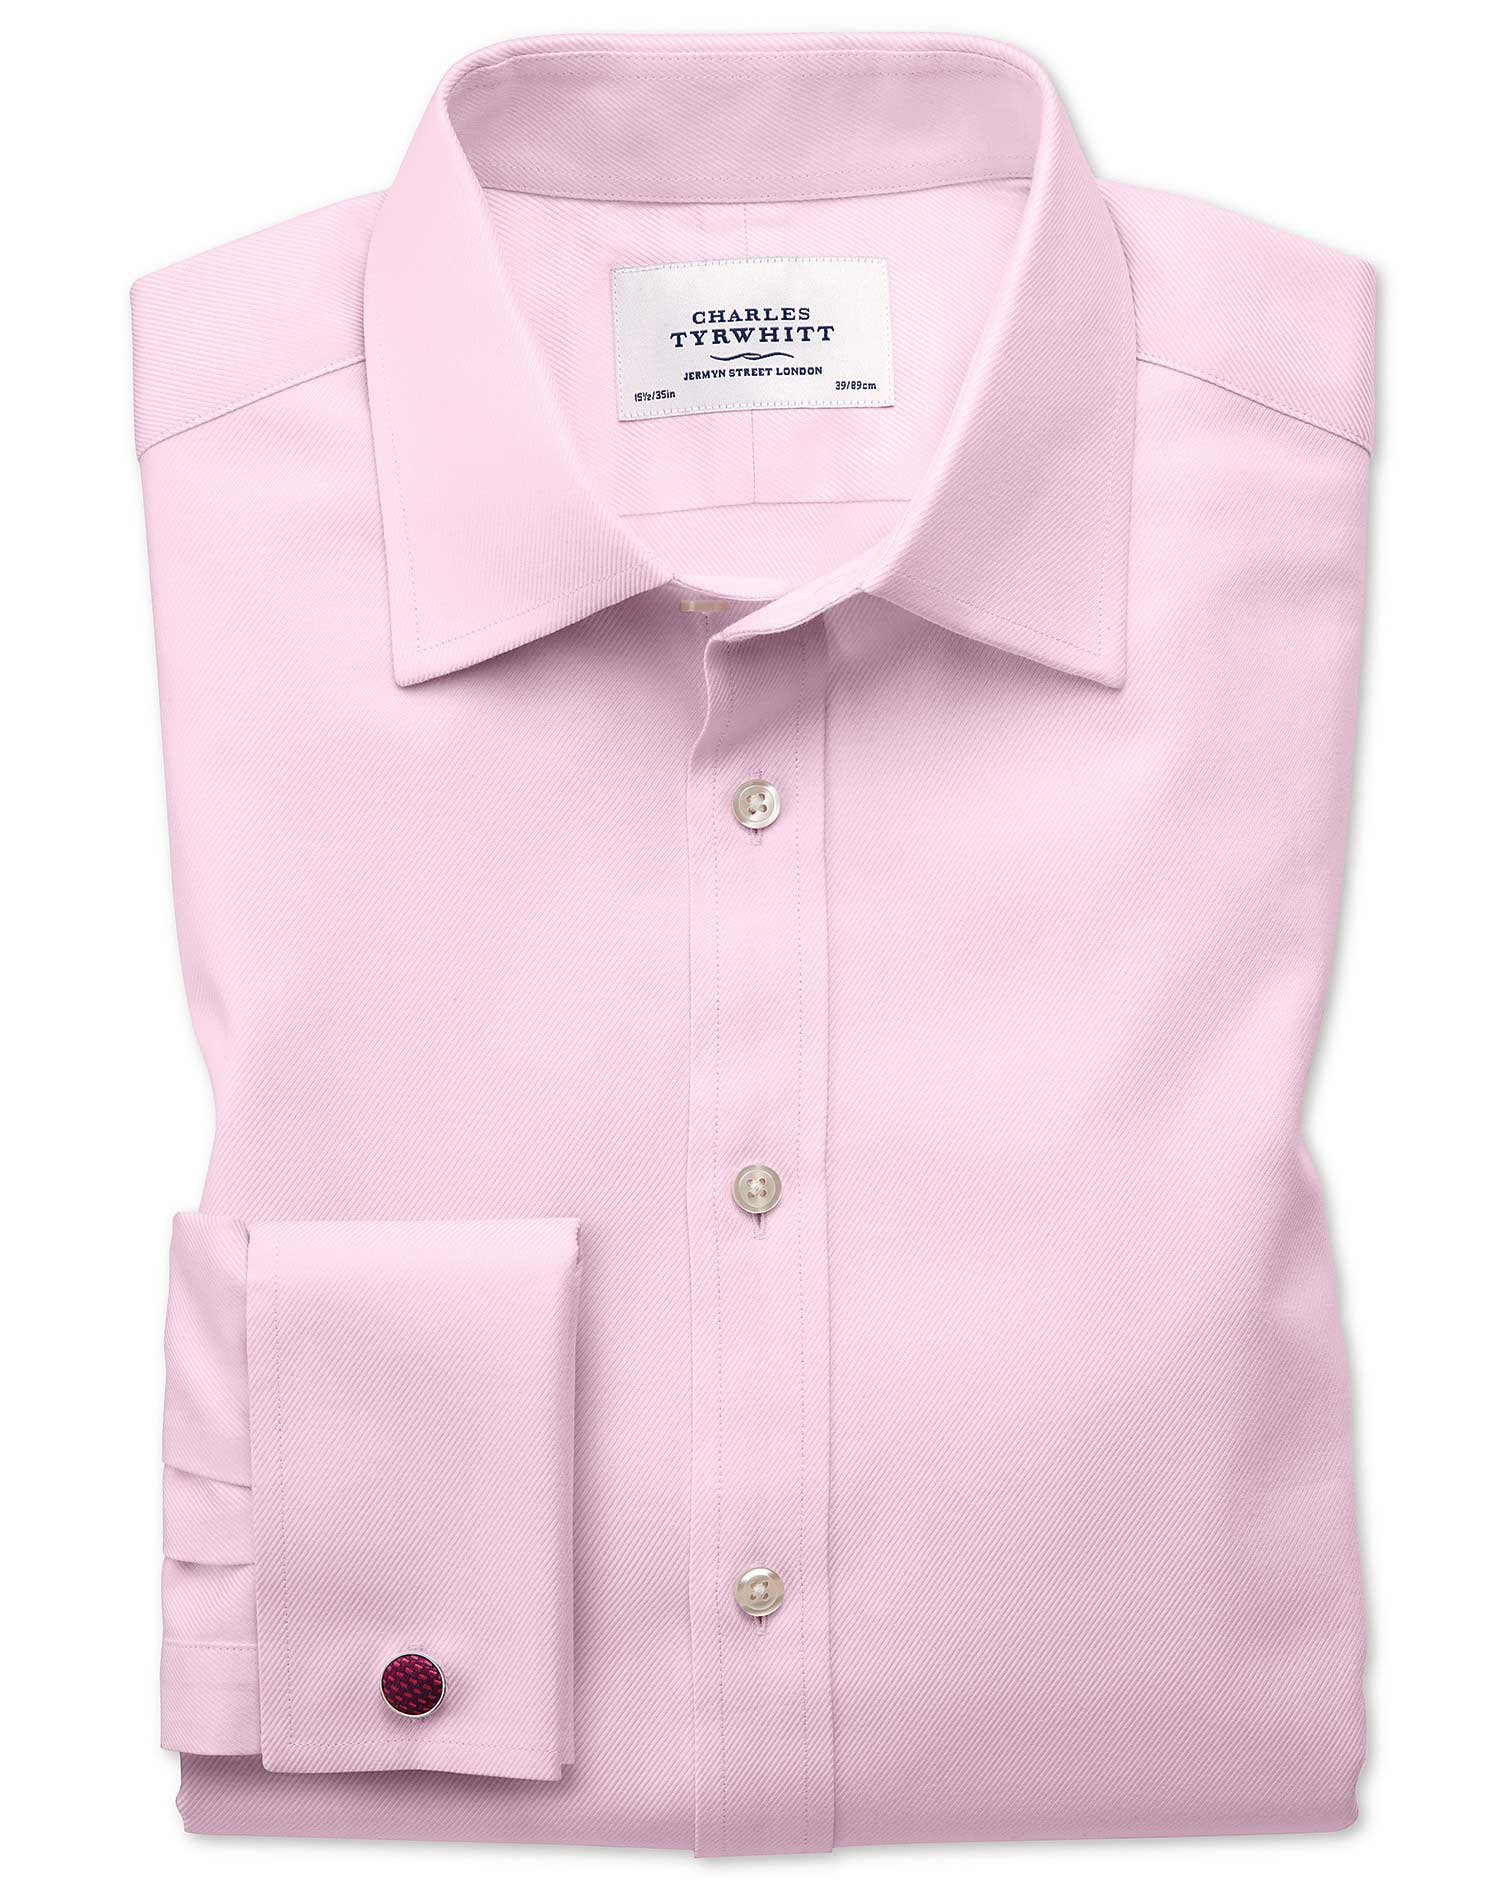 Extra Slim Fit Egyptian Cotton Cavalry Twill Light Pink Formal Shirt Double Cuff Size 16.5/33 by Cha